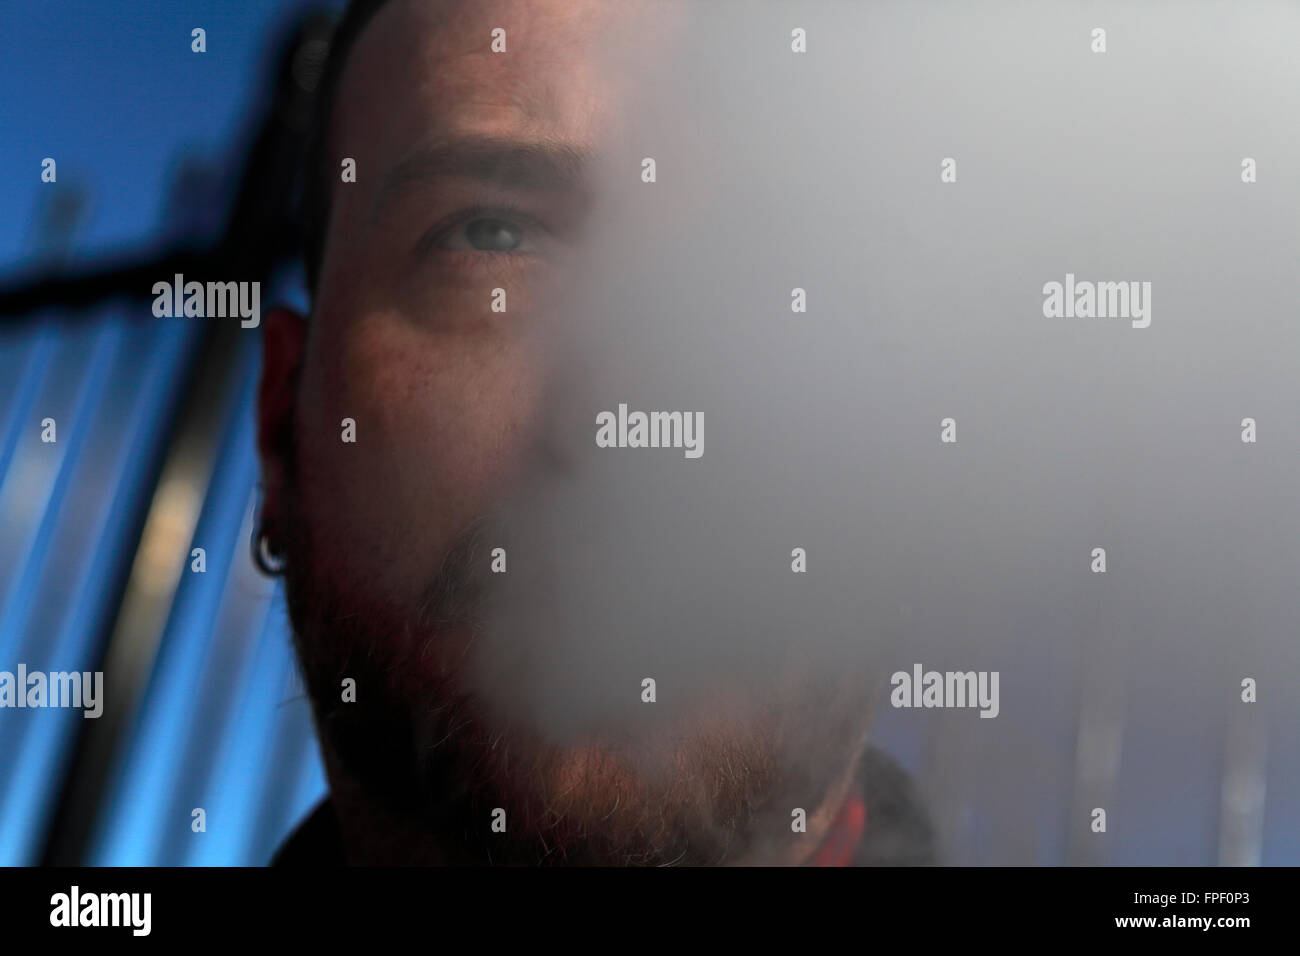 Man using electronic cigarette. - Stock Image